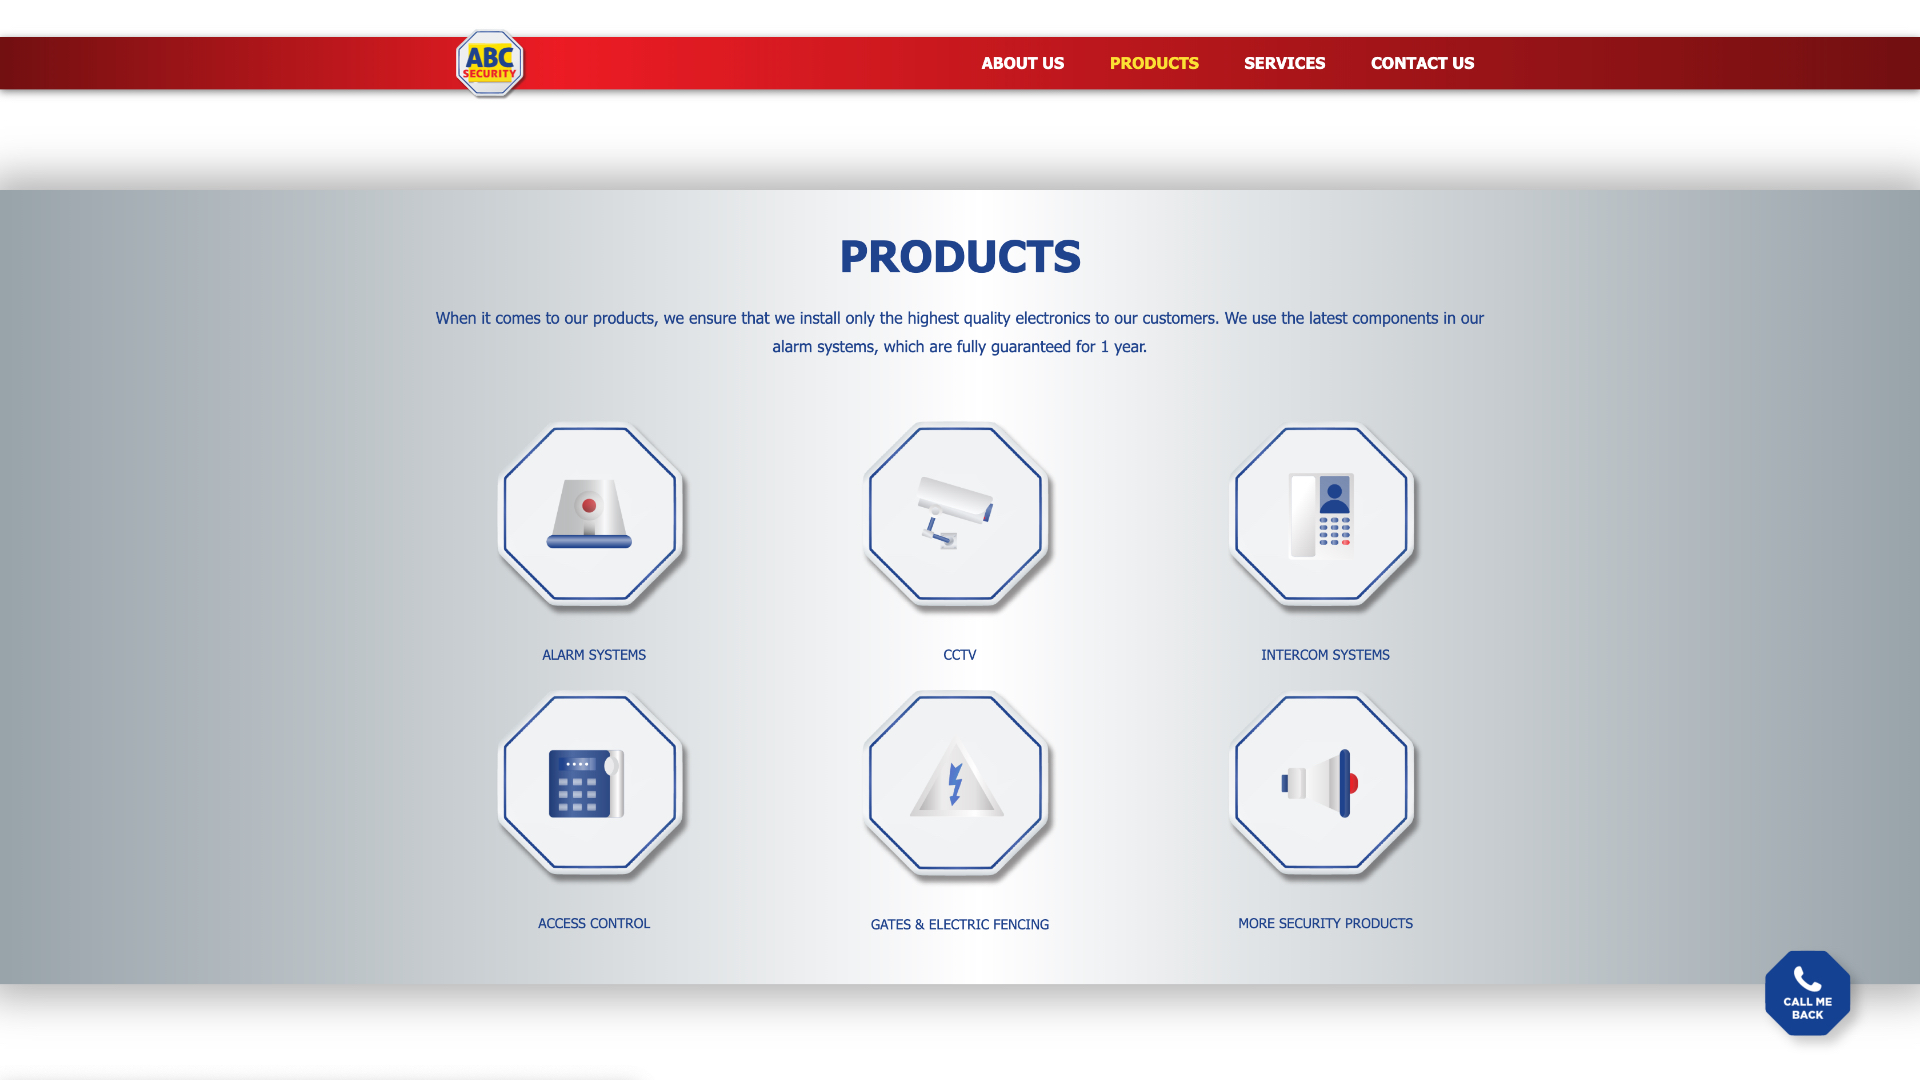 Products Page Design